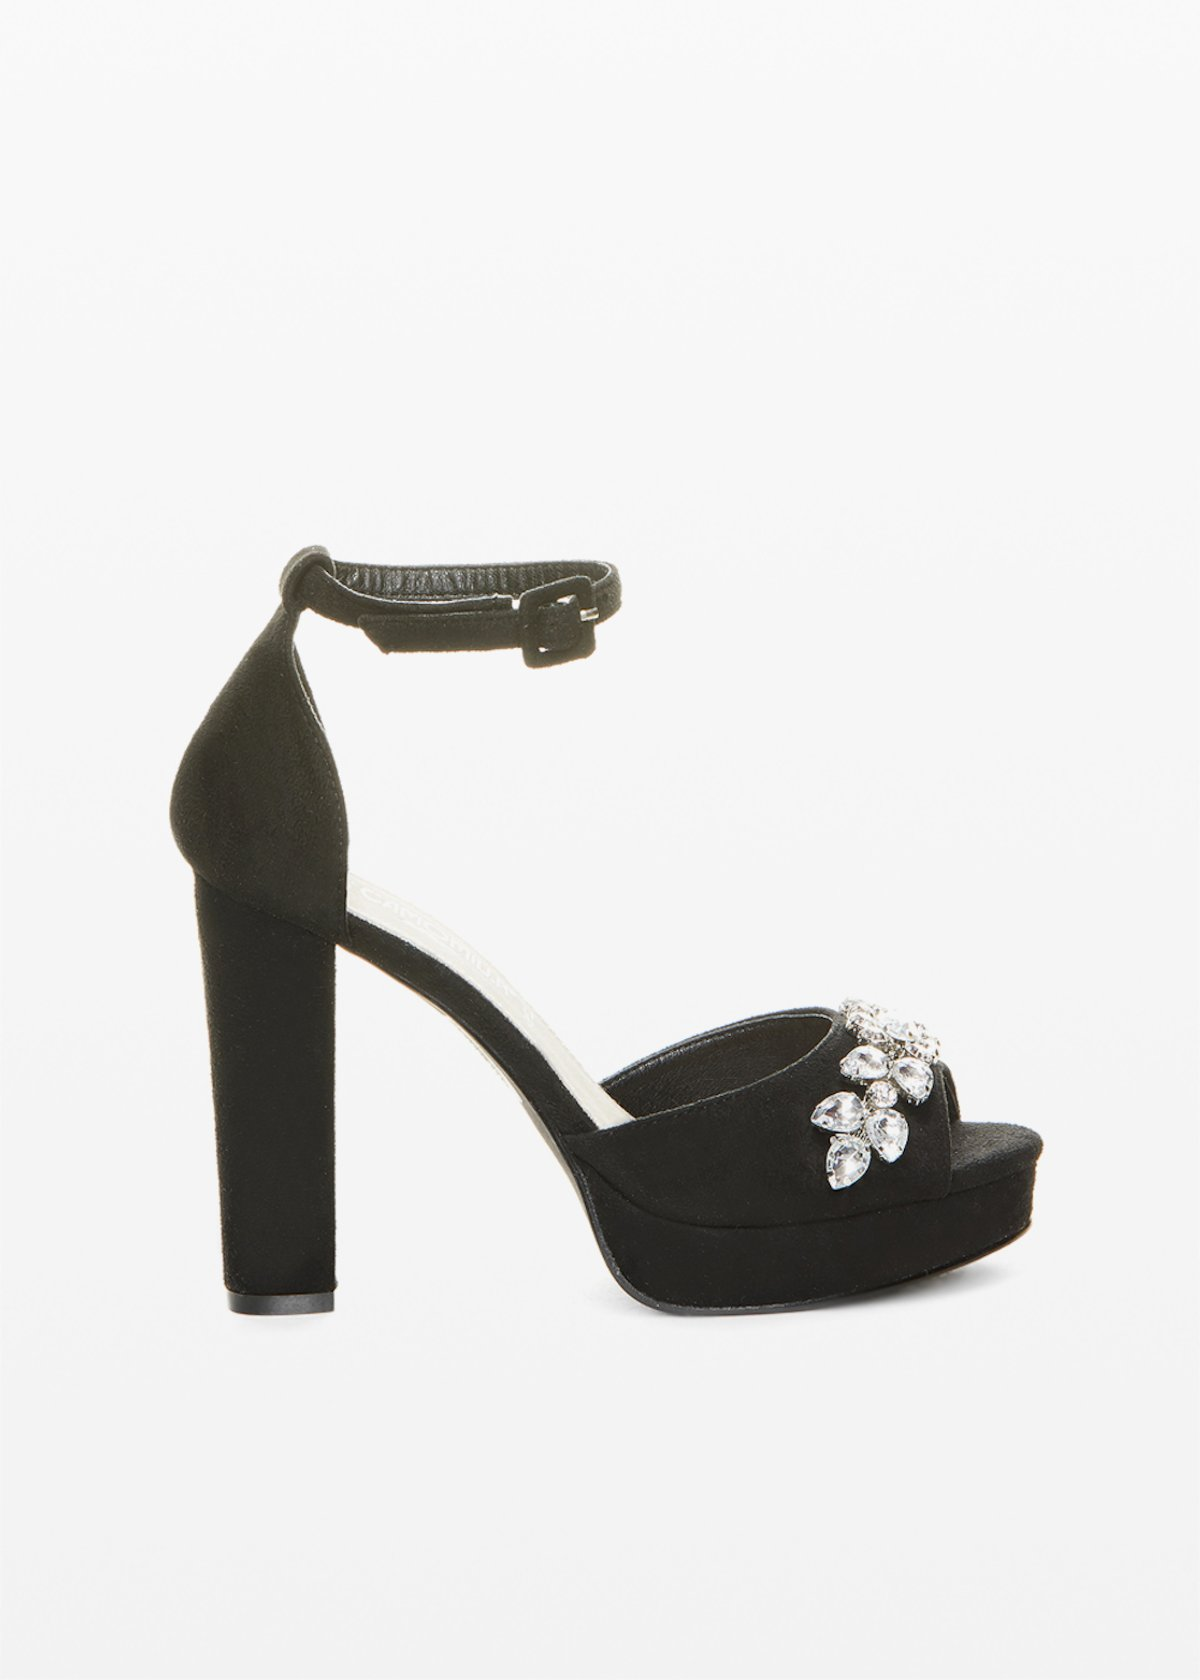 Selya Sandals crystal stones detail - Black - Woman - Category image